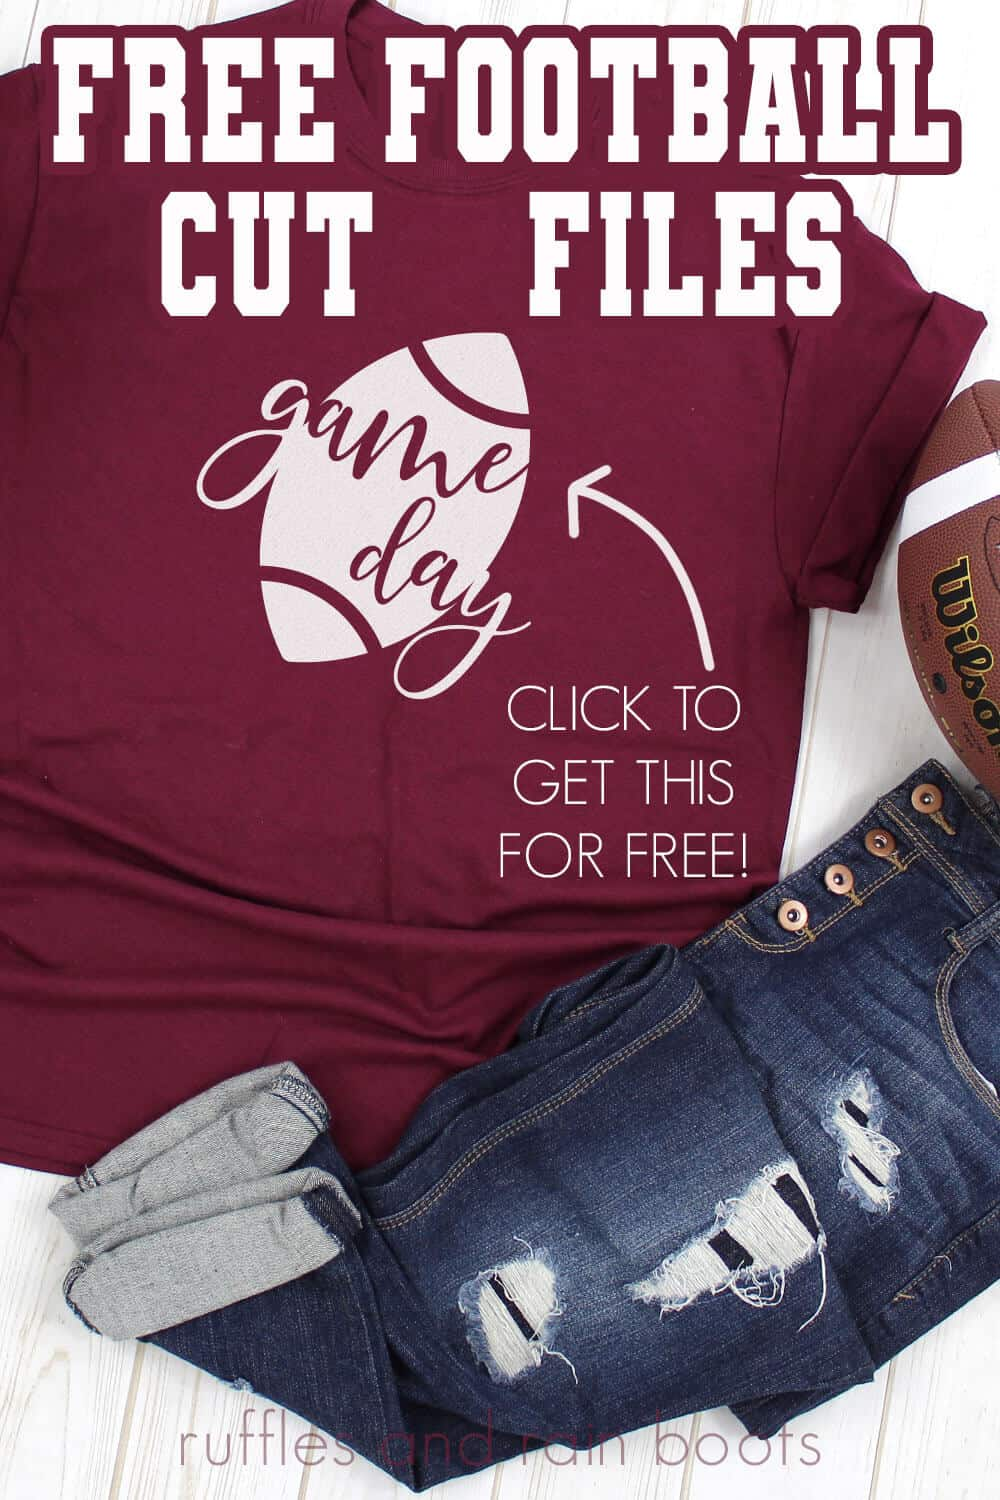 game day svg on maroon t shirt with text which reads free football cut files for Cricut